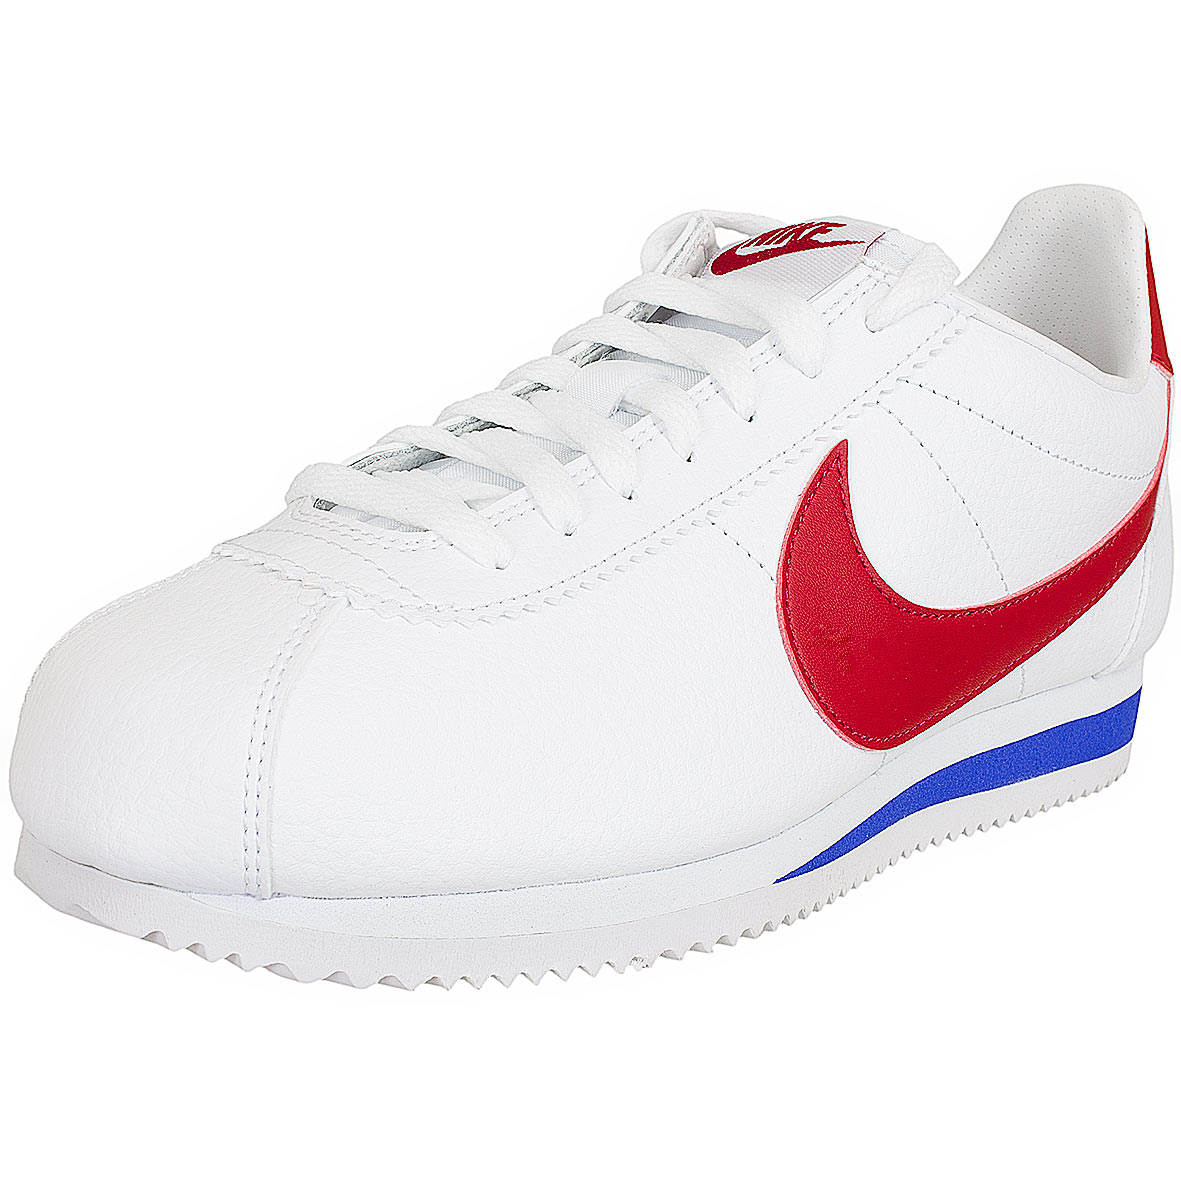 low priced 2e47c 72c50 Nike Sneaker Classic Cortez Leather weißrot